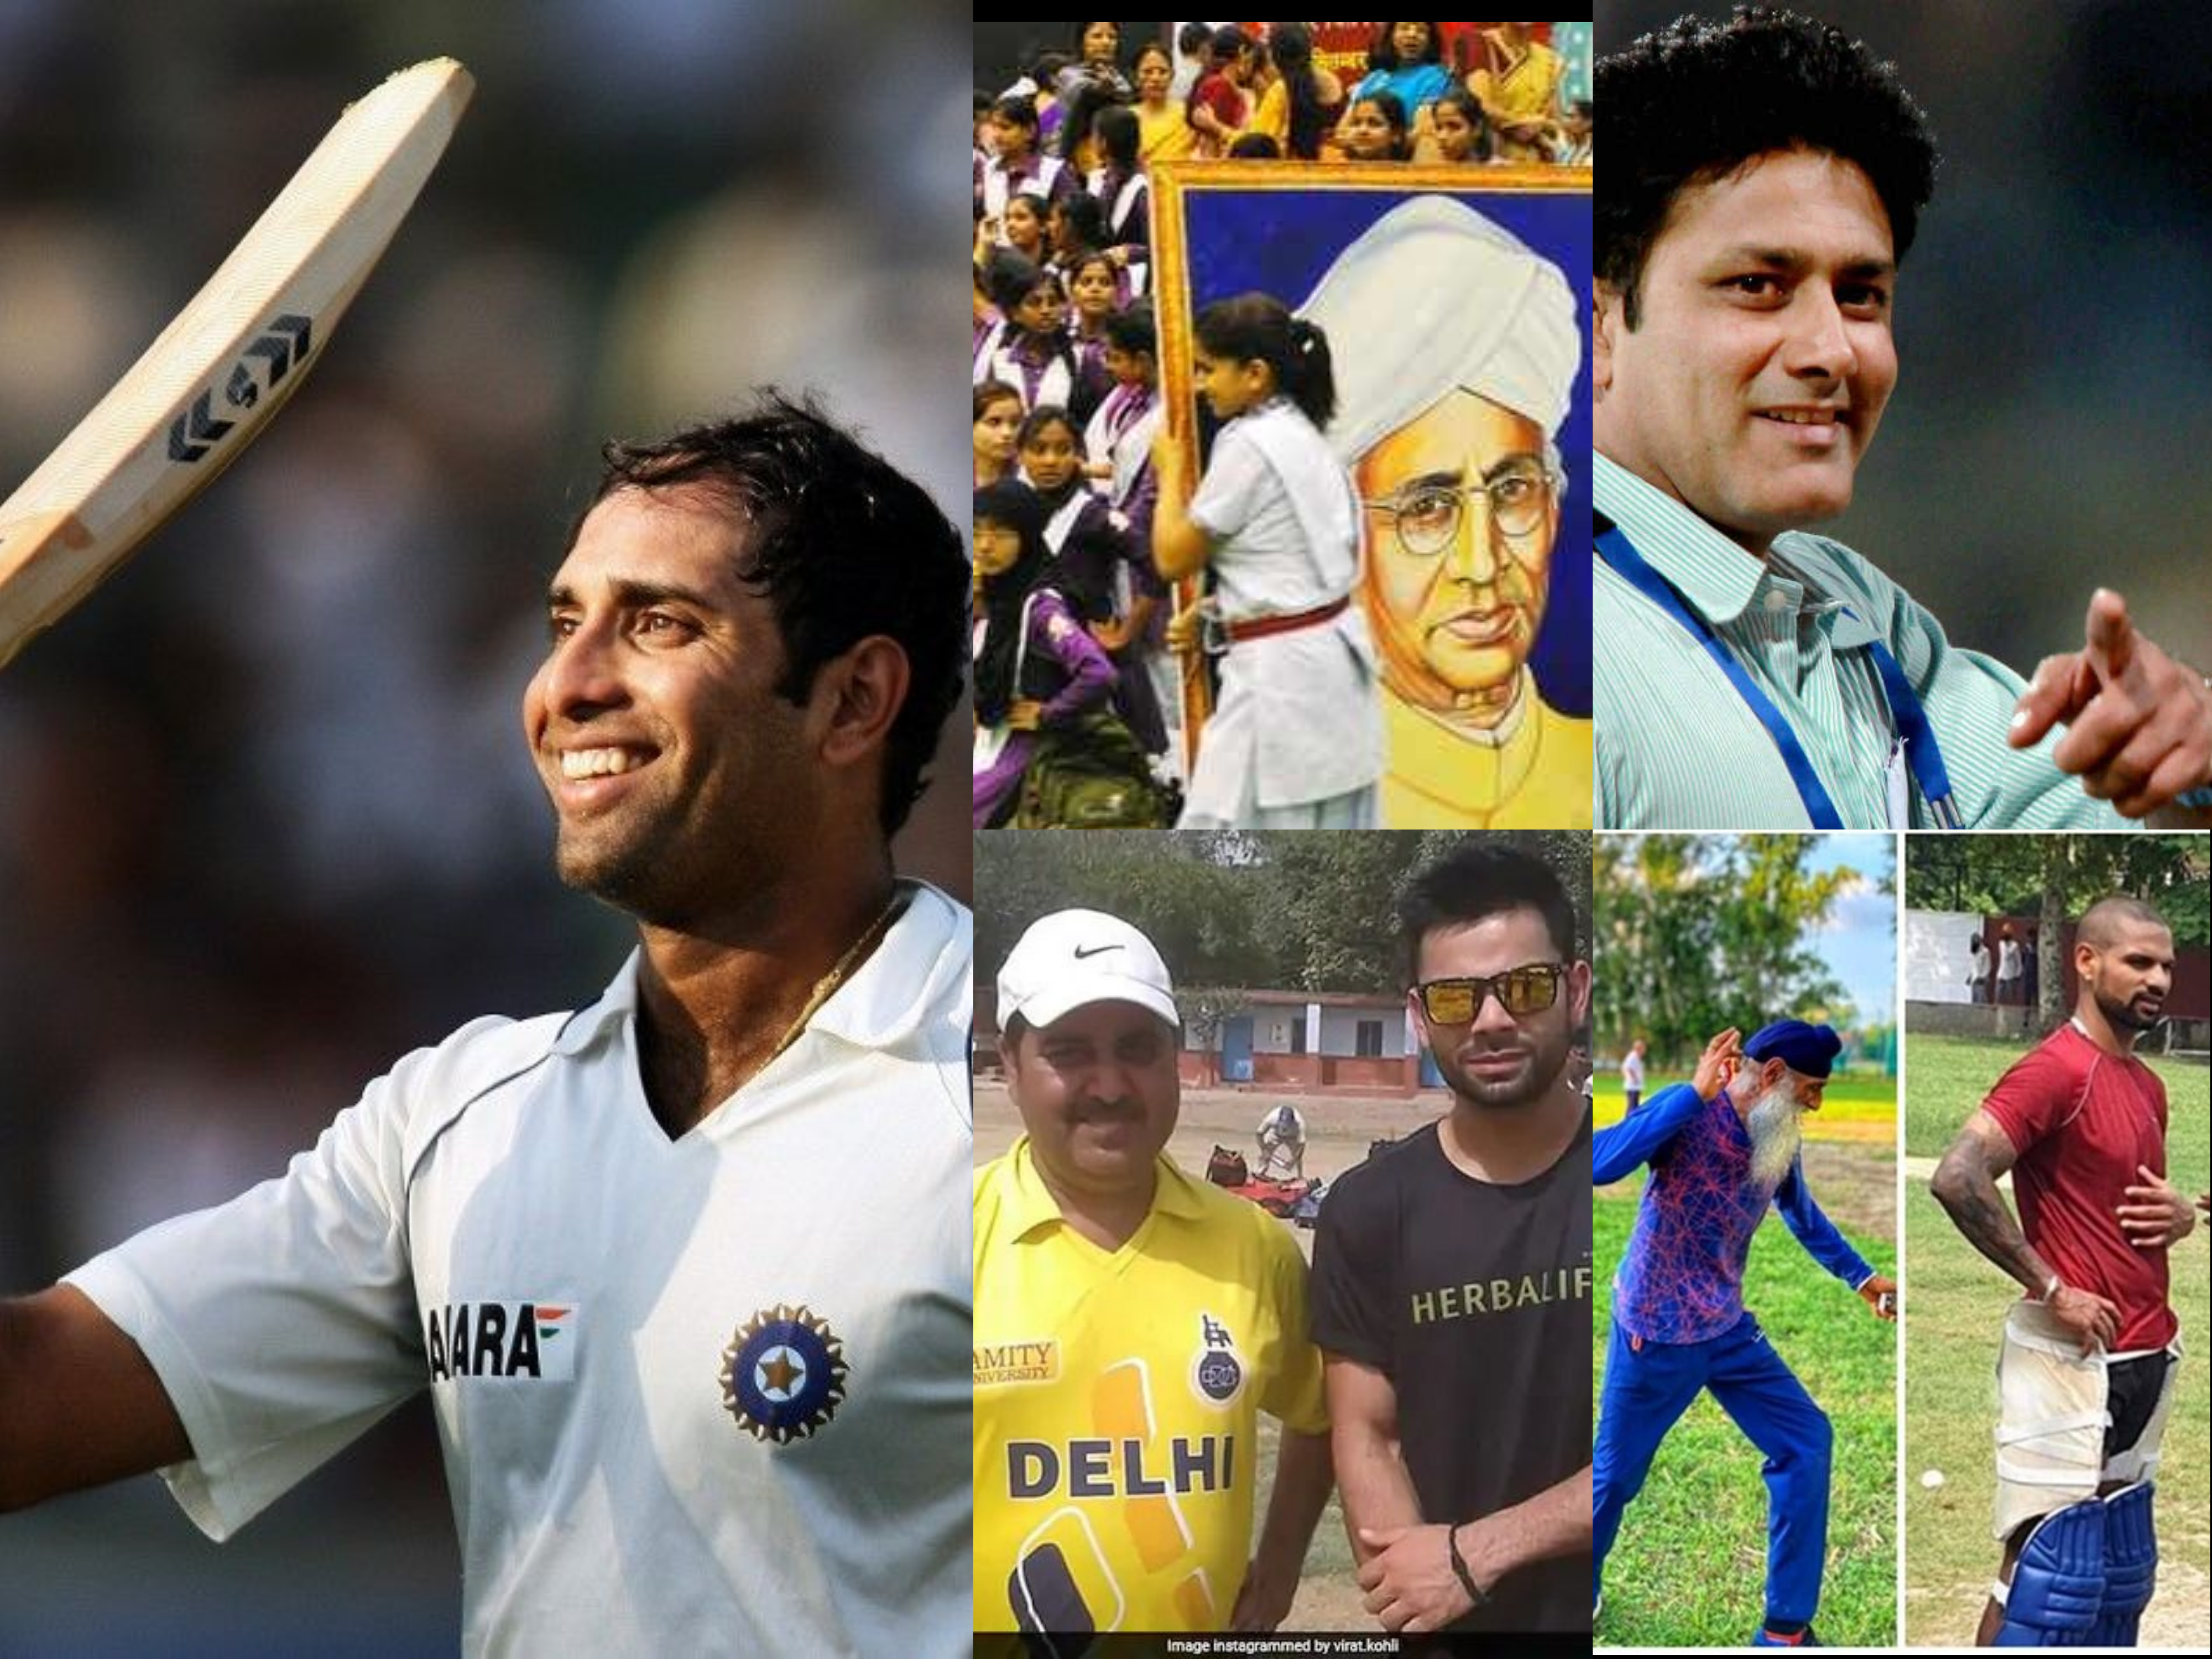 Teacher's Day: Indian Sports celebrities thank their teachers and coaches on the occasion